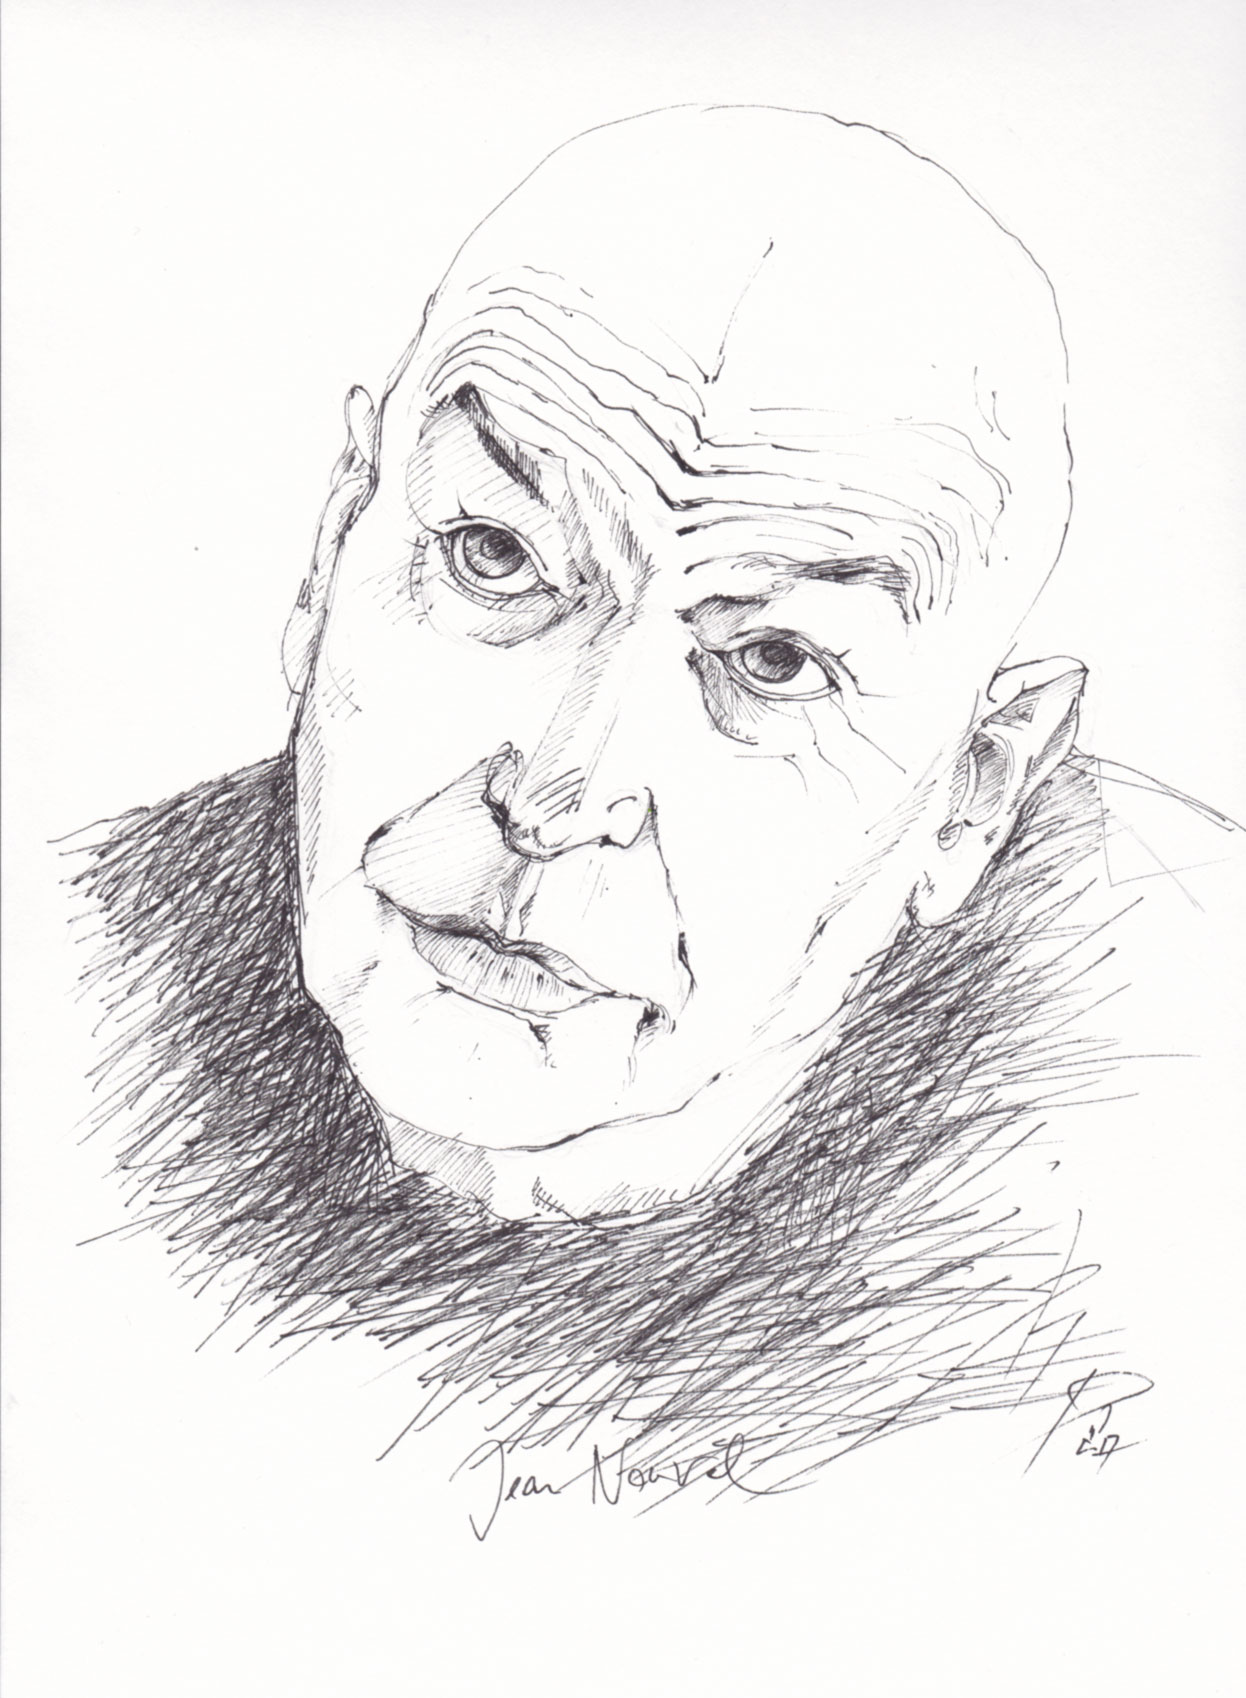 Jean Nouvel . 2018 . Fineliner